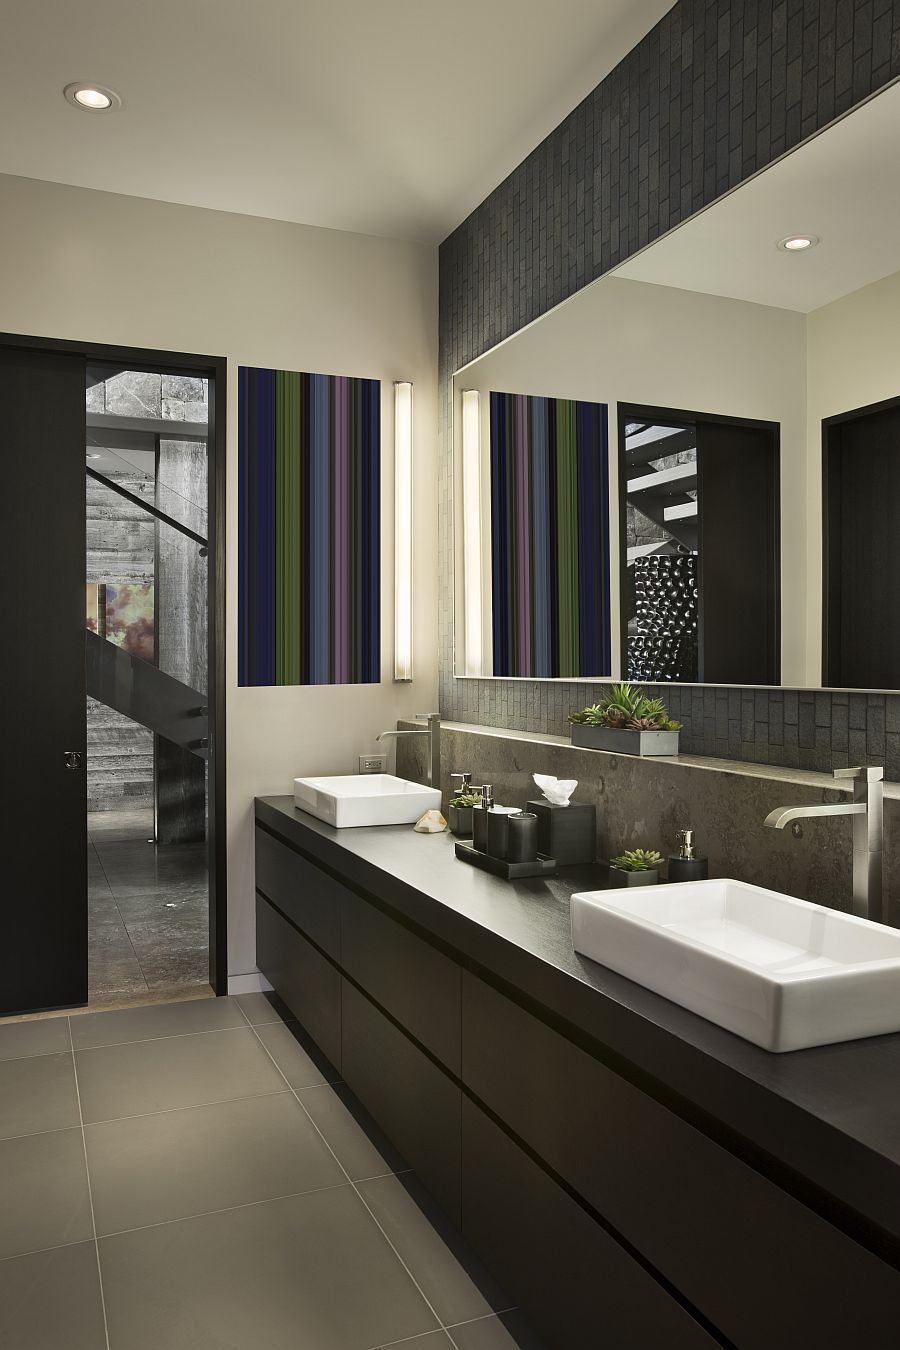 Modern Bathroom Design Ideas Pictures Tips From Hgtv: Private Luxury Ski Resort In Montana By Len Cotsovolos